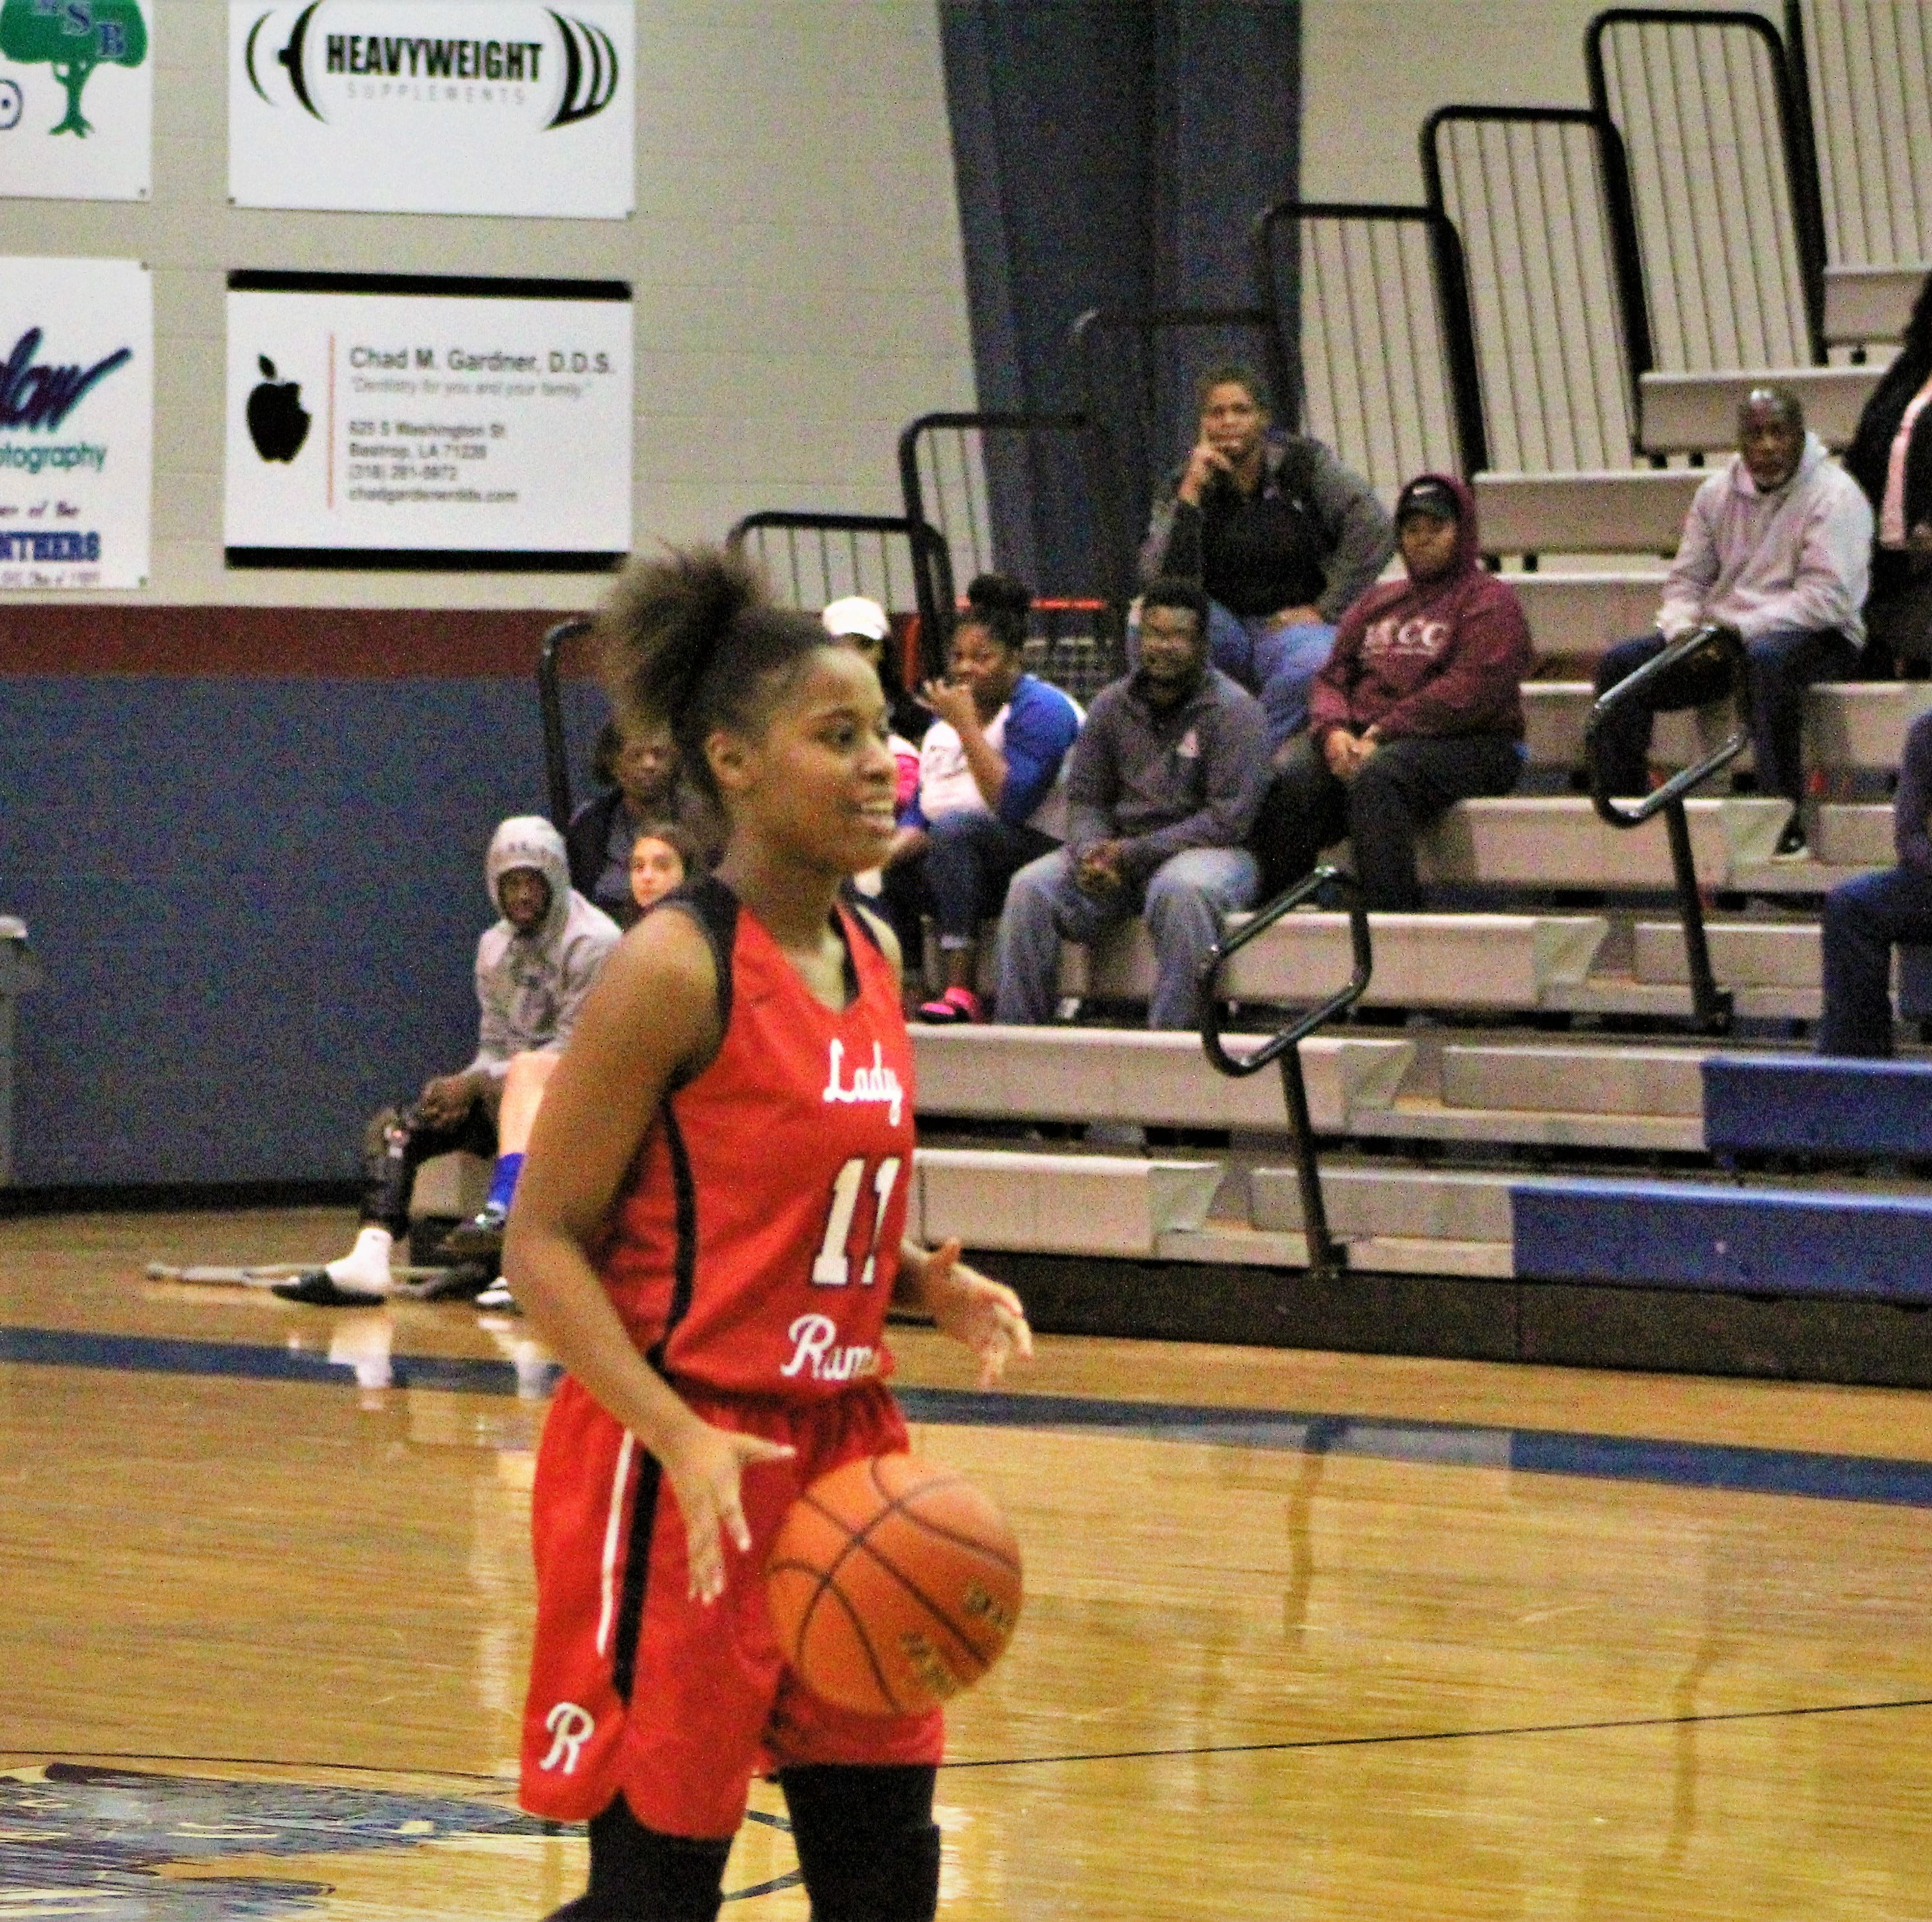 Richwood's Shantal Sidney (11) brings the ball up the court in Richwood's 74-59 District 2-3A win over the Sterlington Lady Panthers at Sterlington High School on Tuesday.